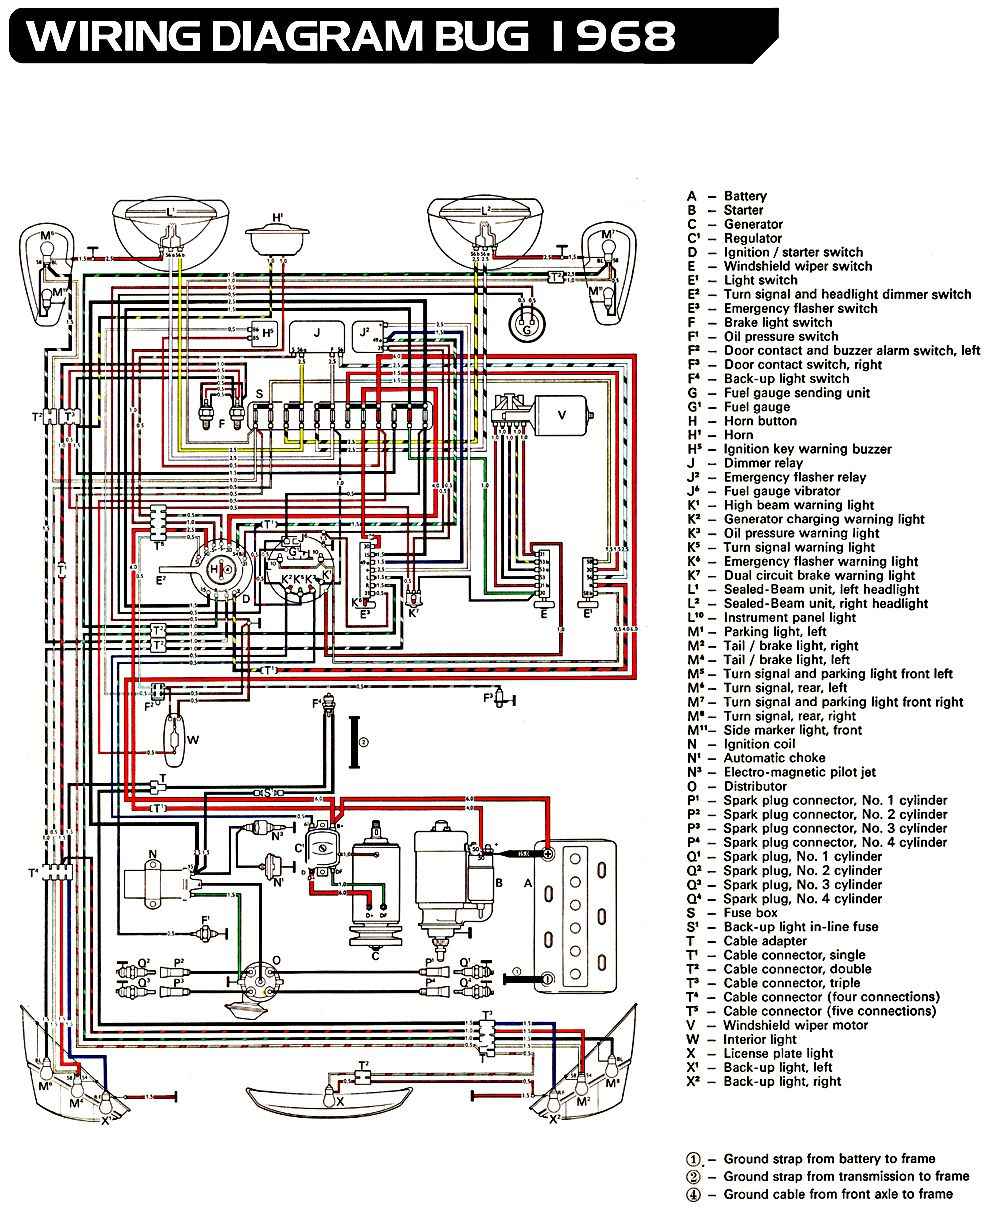 volkswagen new beetle wiring diagram schematics online 73 Beetle Wiring Diagram